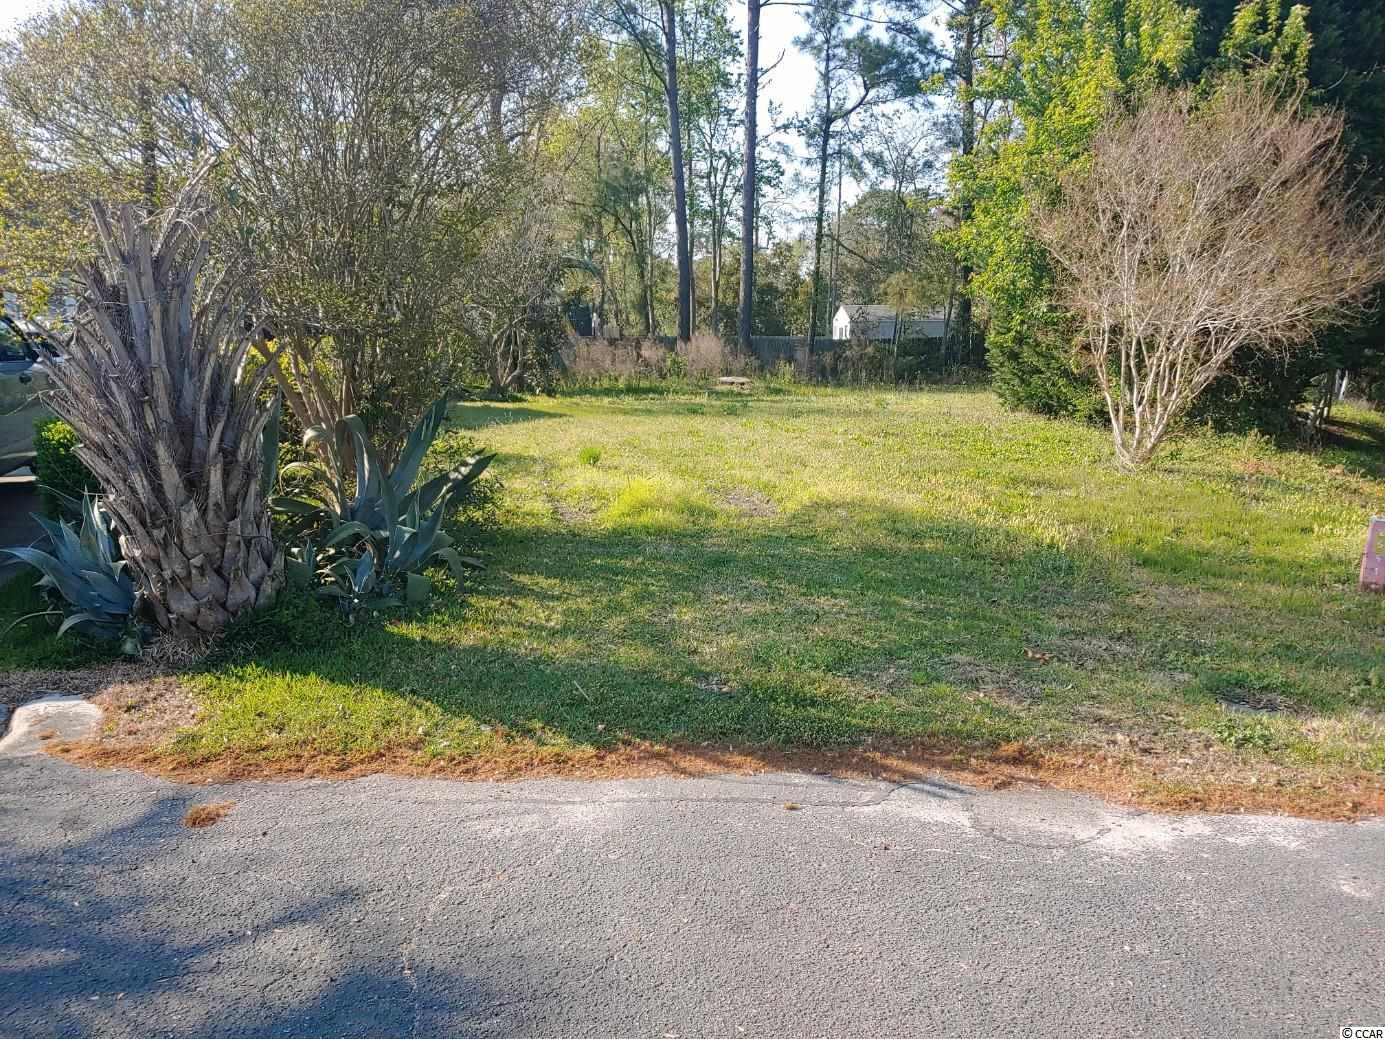 This lot is one if not only lot located in the much sought after Kings Grant in Murrells Inlet, and is a close distance to the famous Marshwalk, several golf courses, restaurants and the Atlantic ocean. There has been many improvements to the lot and is ready to build. Large pipe was installed in the back ditch and filled with topsoil to make lot larger and to improve drainage. Also large tree from center of lot removed and Fruit trees planted.